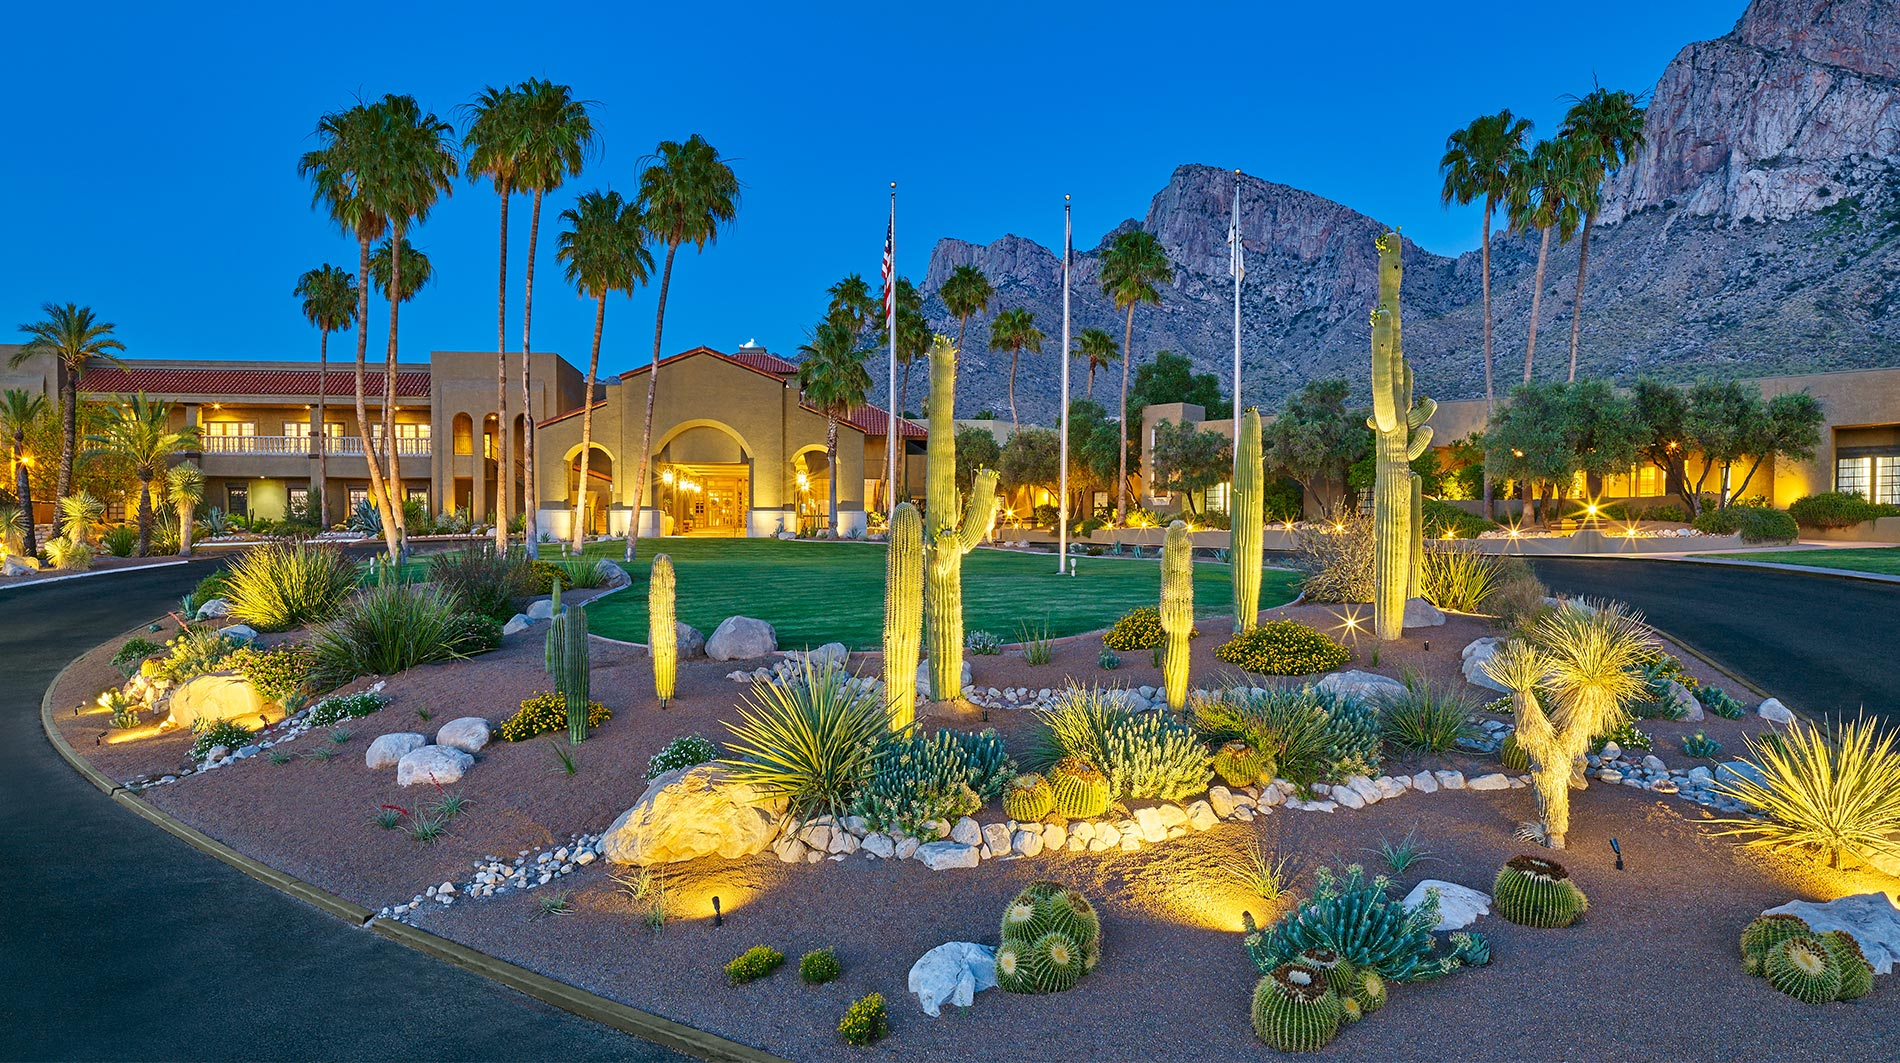 Tucson Hotels and Lodging: Tucson, AZ Hotel Reviews by 10Best